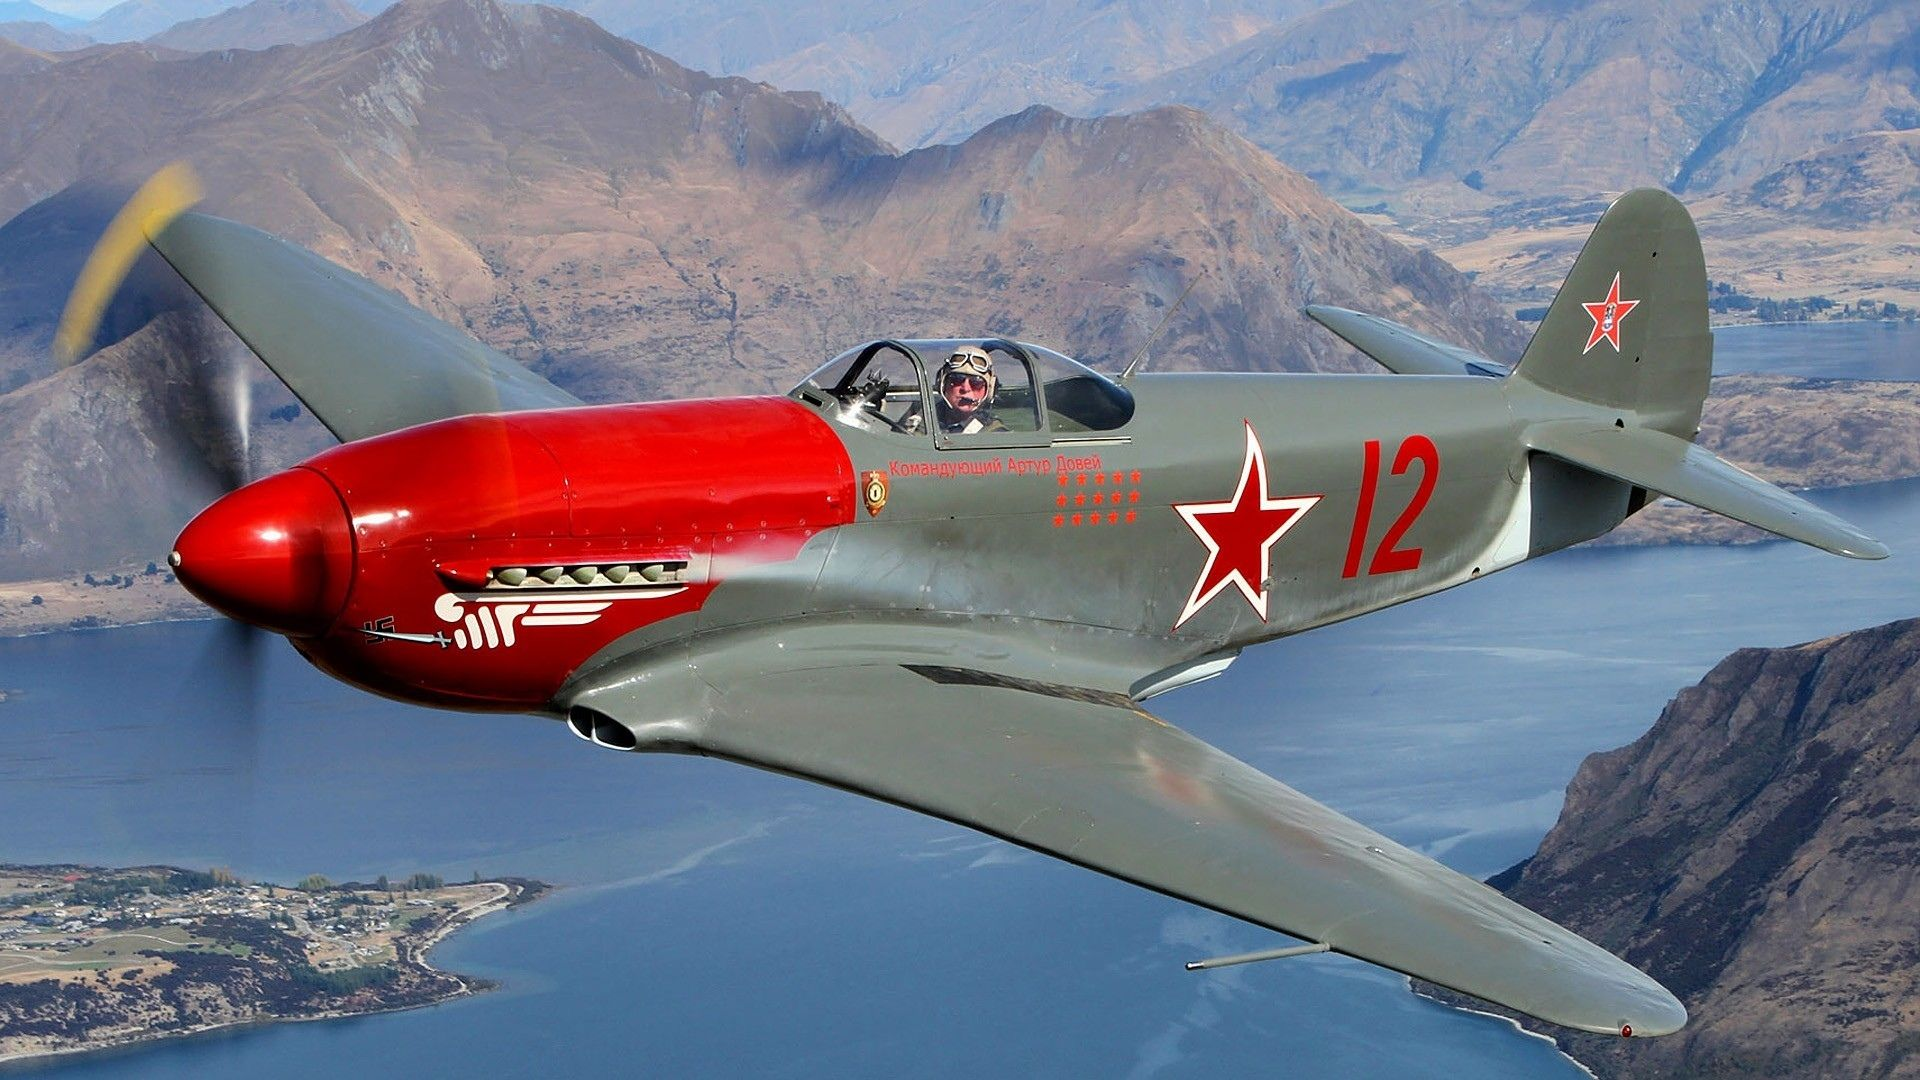 Category Vehicles → Aircrafts  Resolution 1920x1080